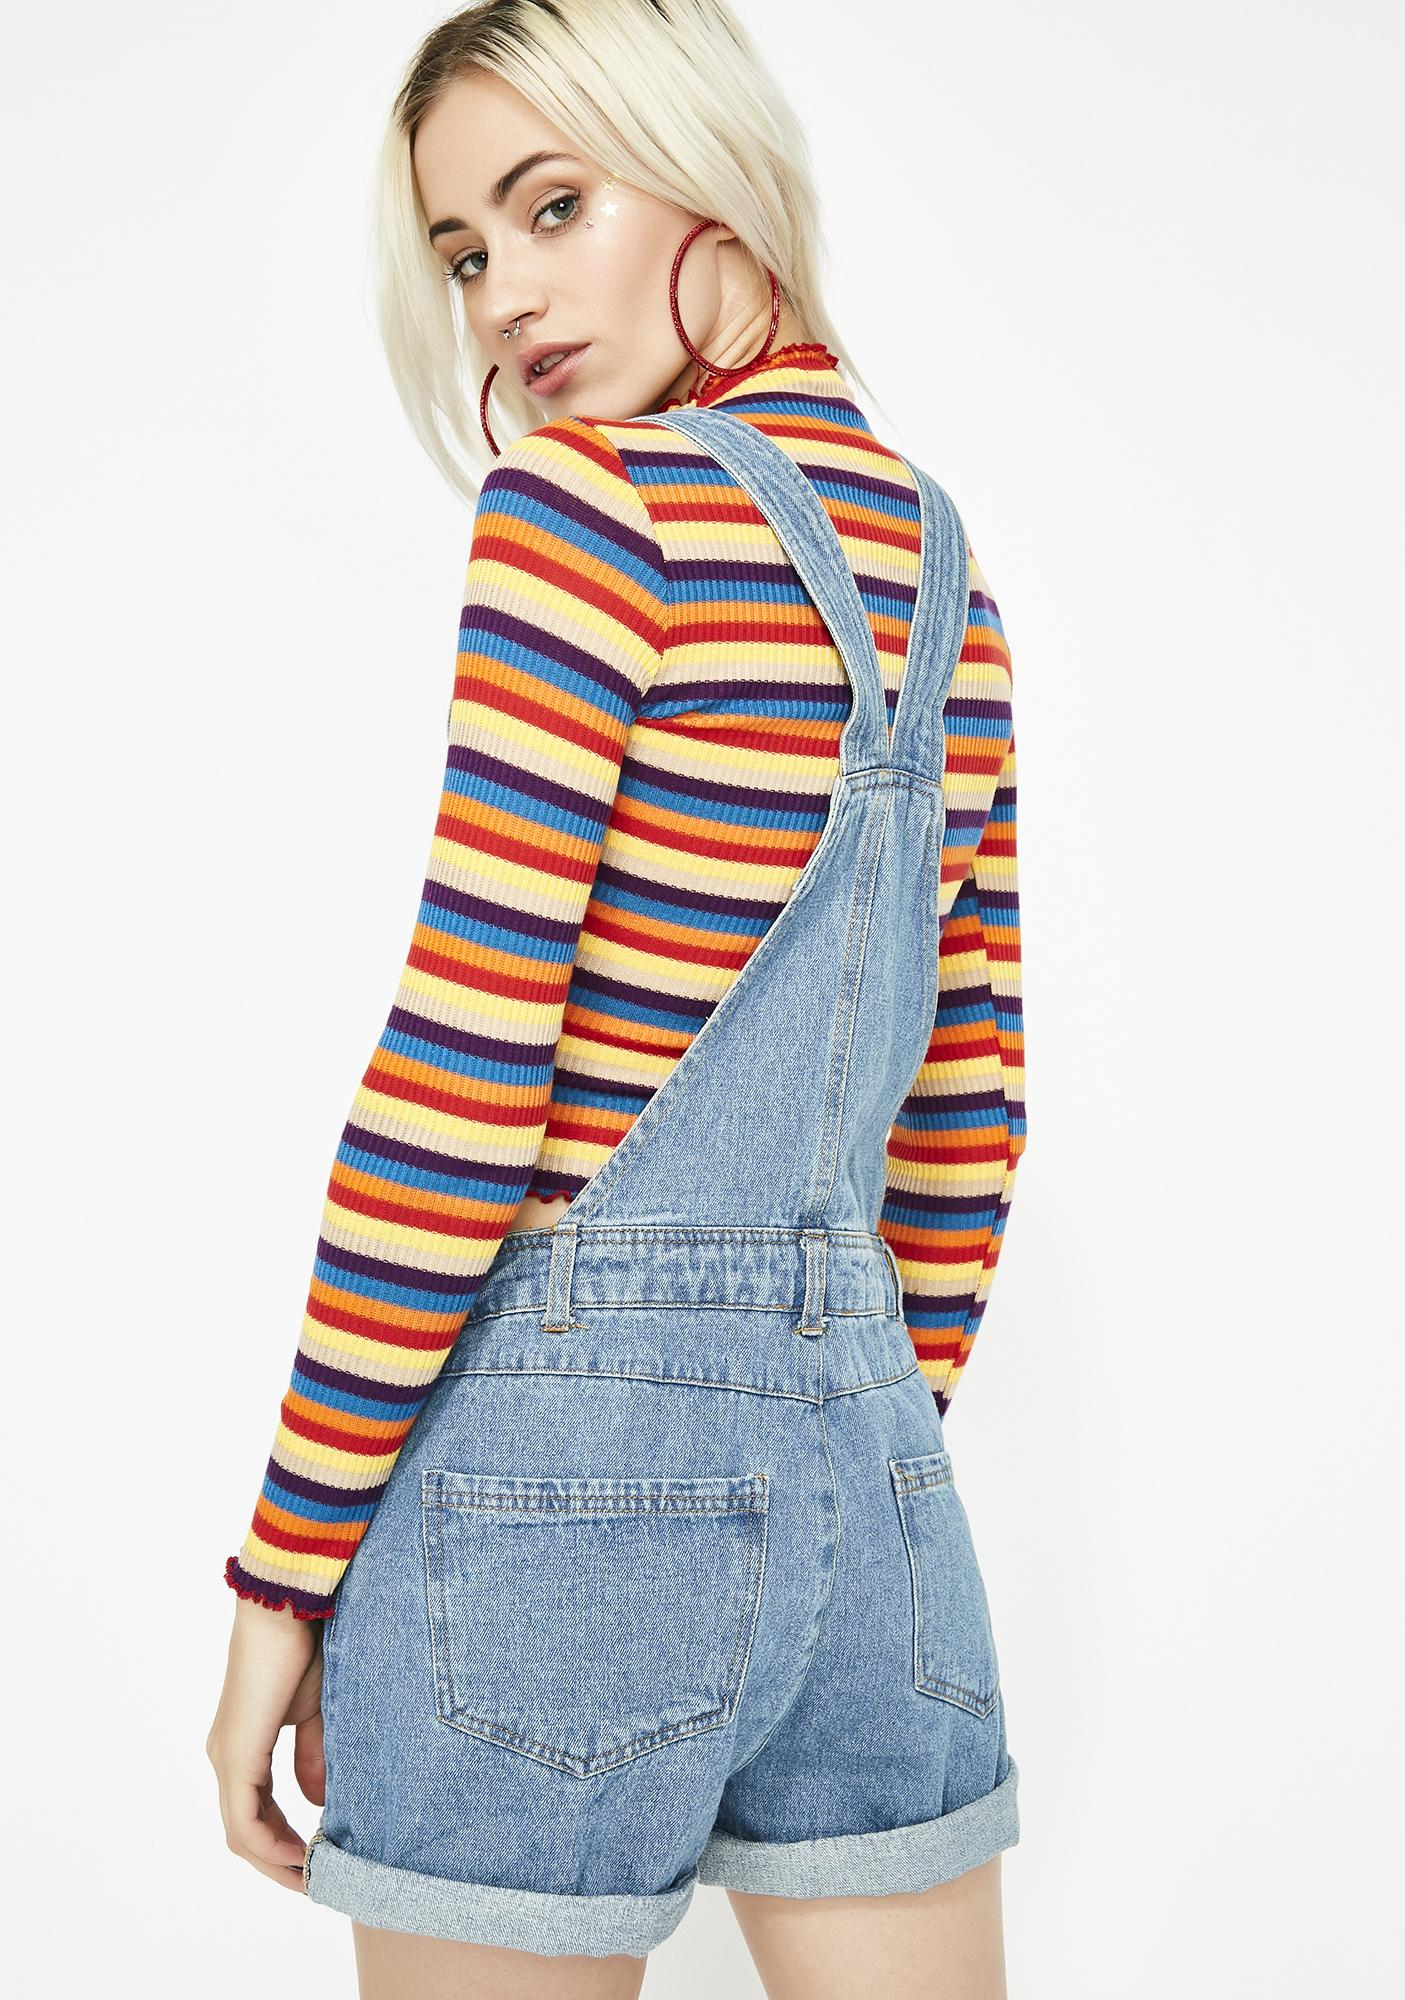 Babe Next Door Denim Overalls